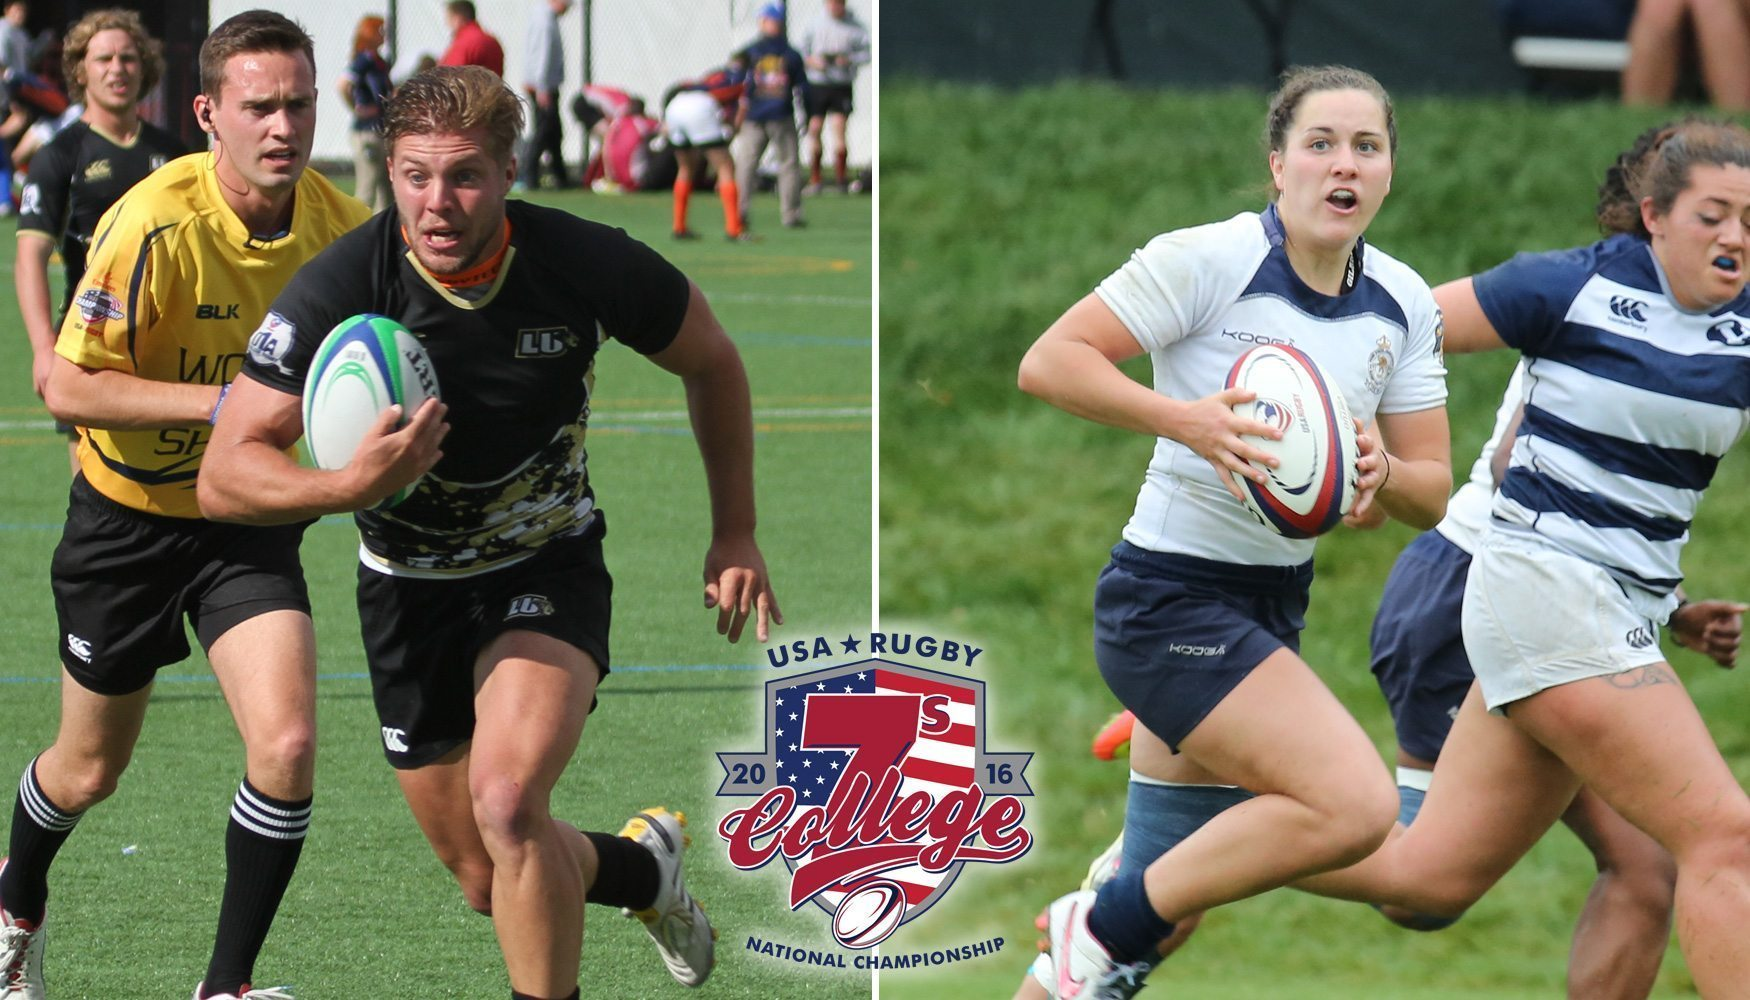 National Champions highlight massive College 7s field